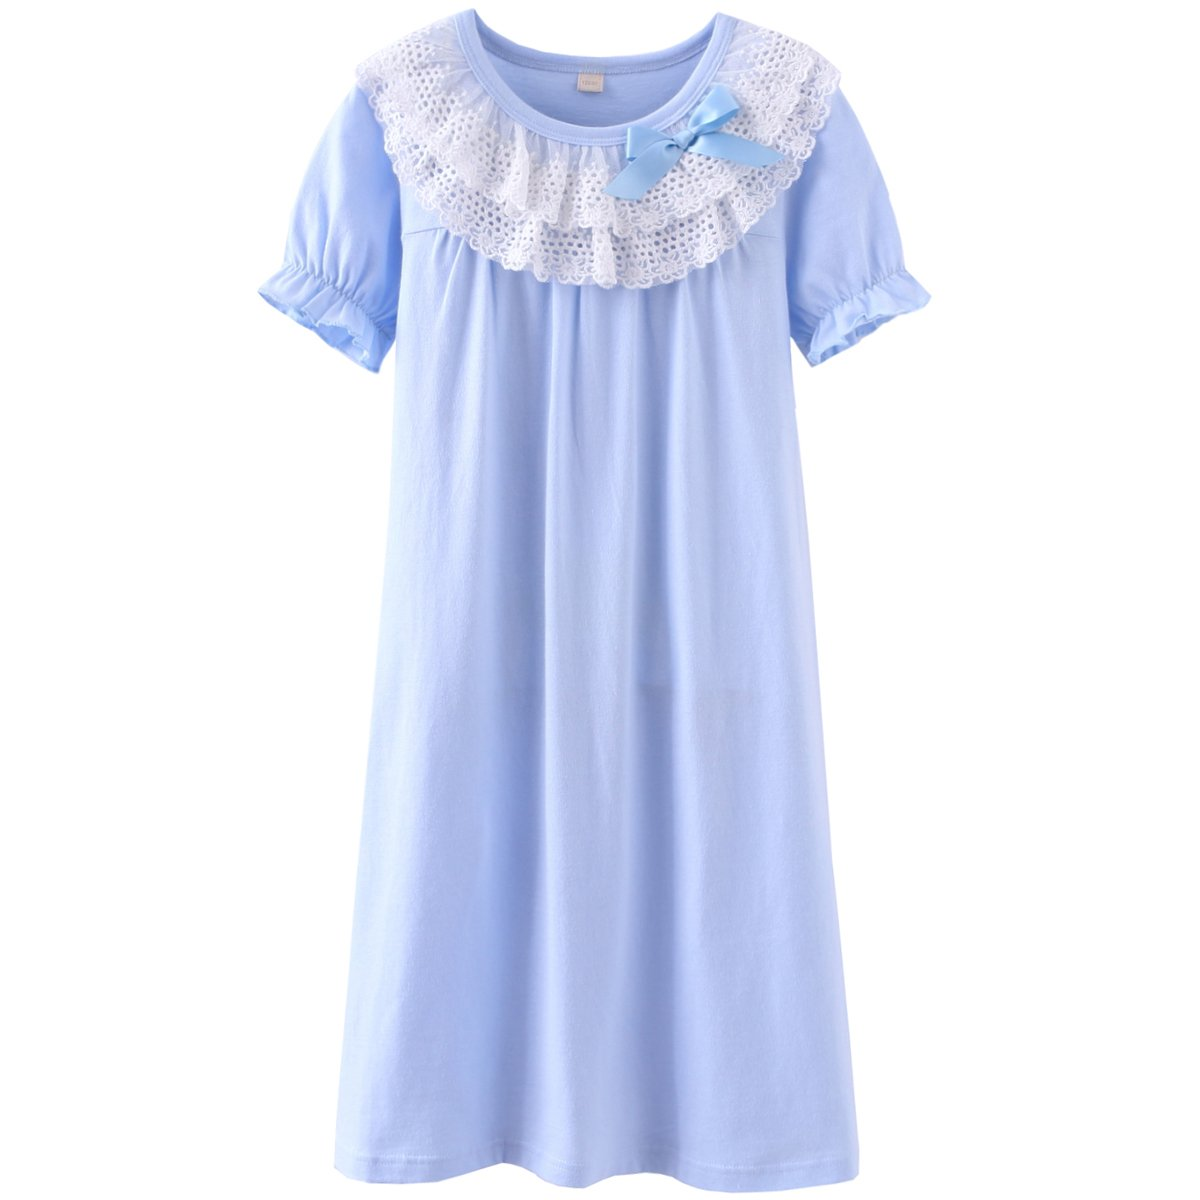 DGAGA Little Girls Princess Nightgown Cotton Lace Bowknot Sleepwear Nightdress Blue 11-12 Years/160cm